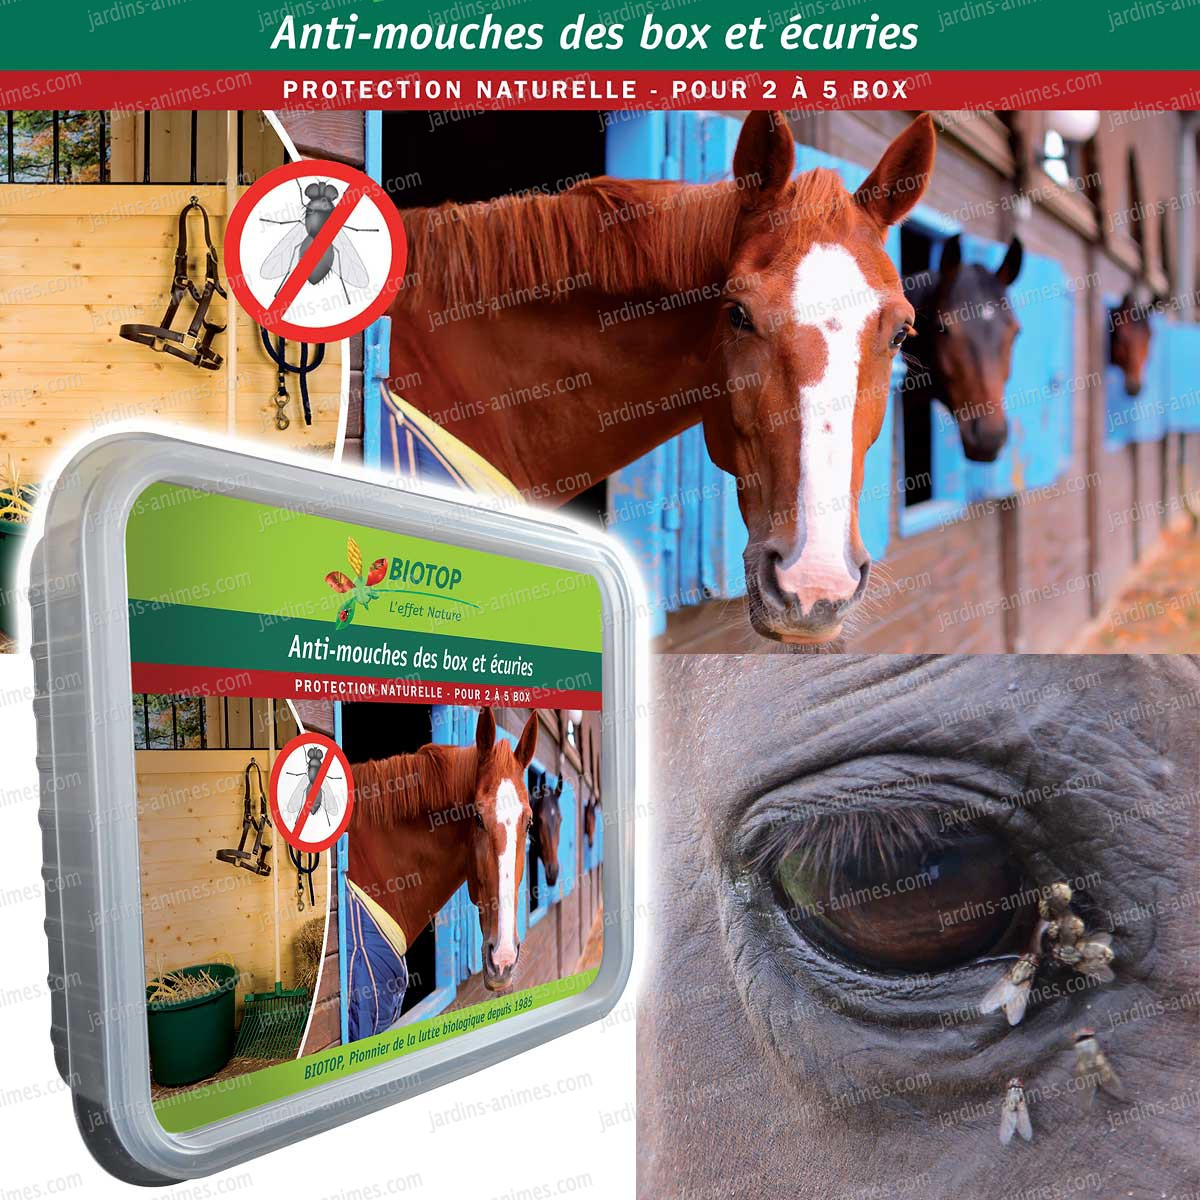 Anti mouche cheval maison efficace ventana blog for Anti mouches maison